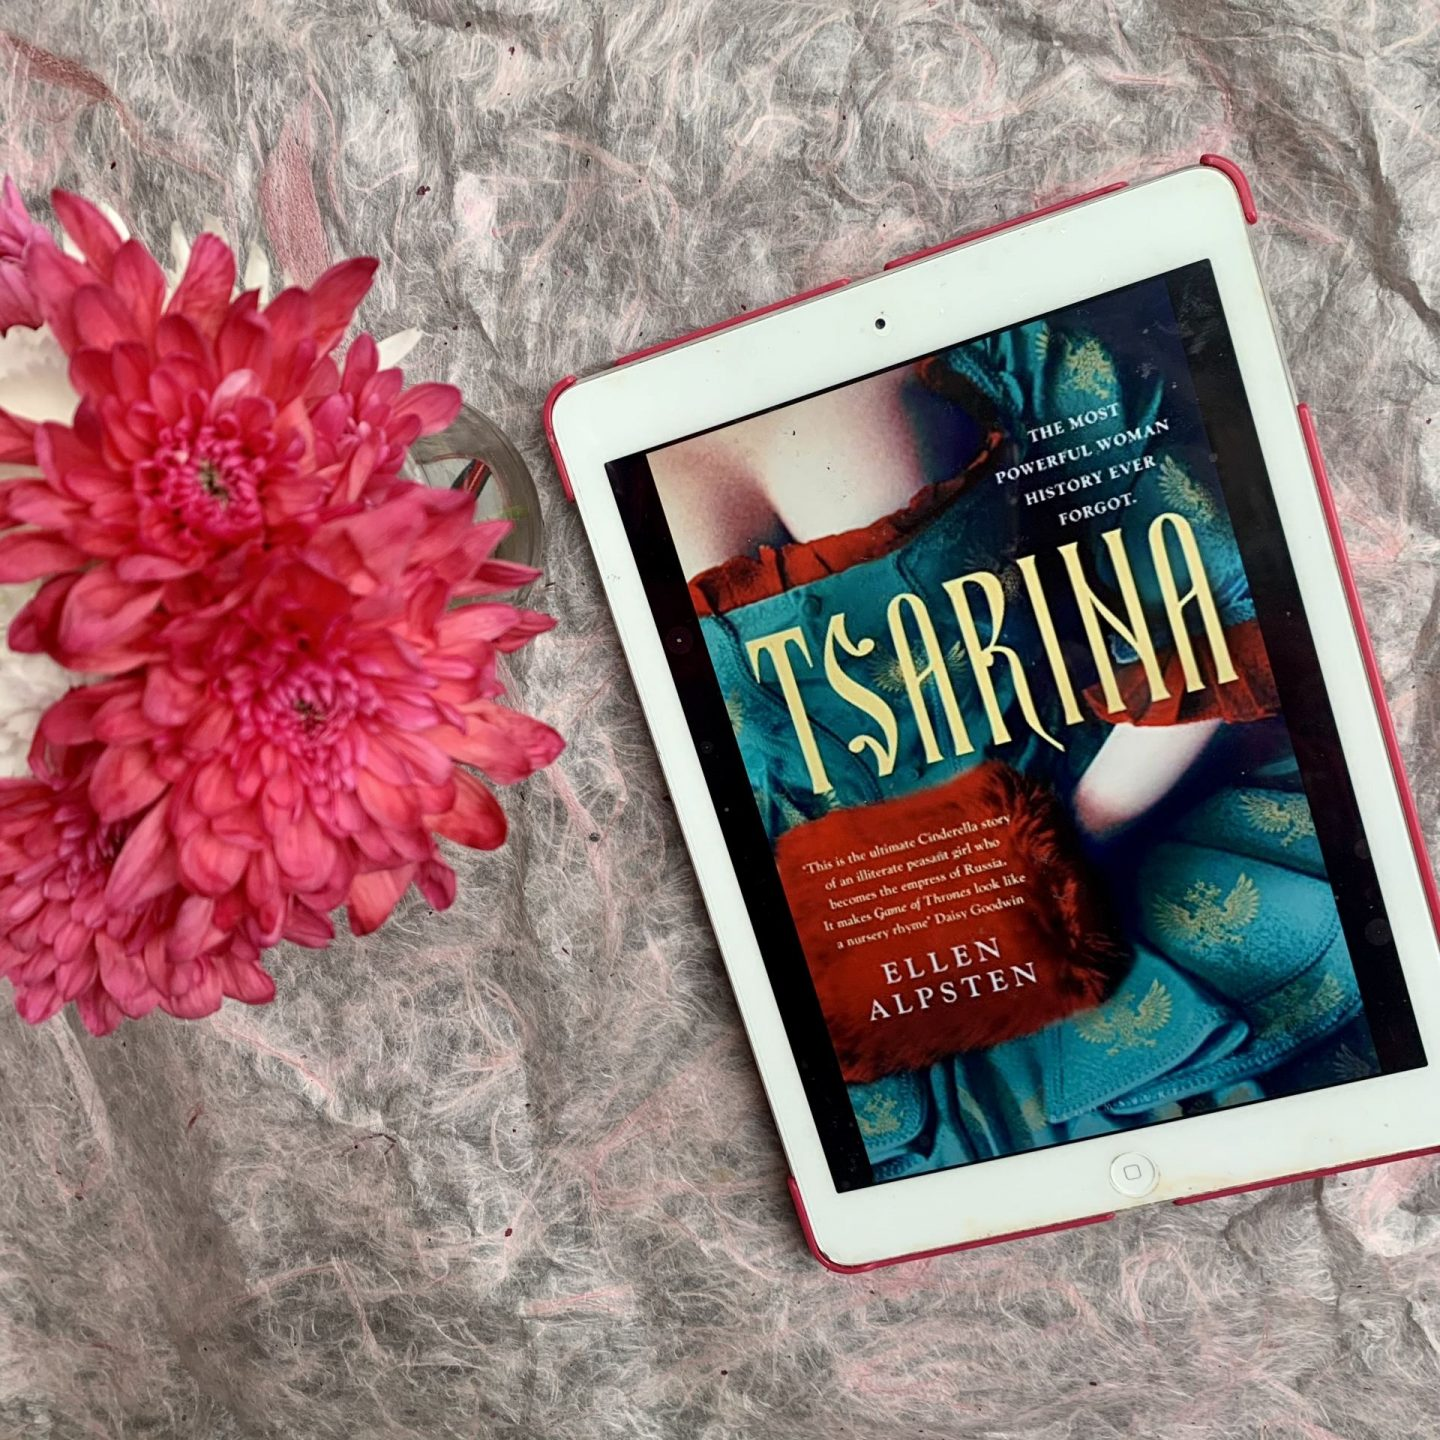 Tsarina; a sweeping, sensual historic portrayal